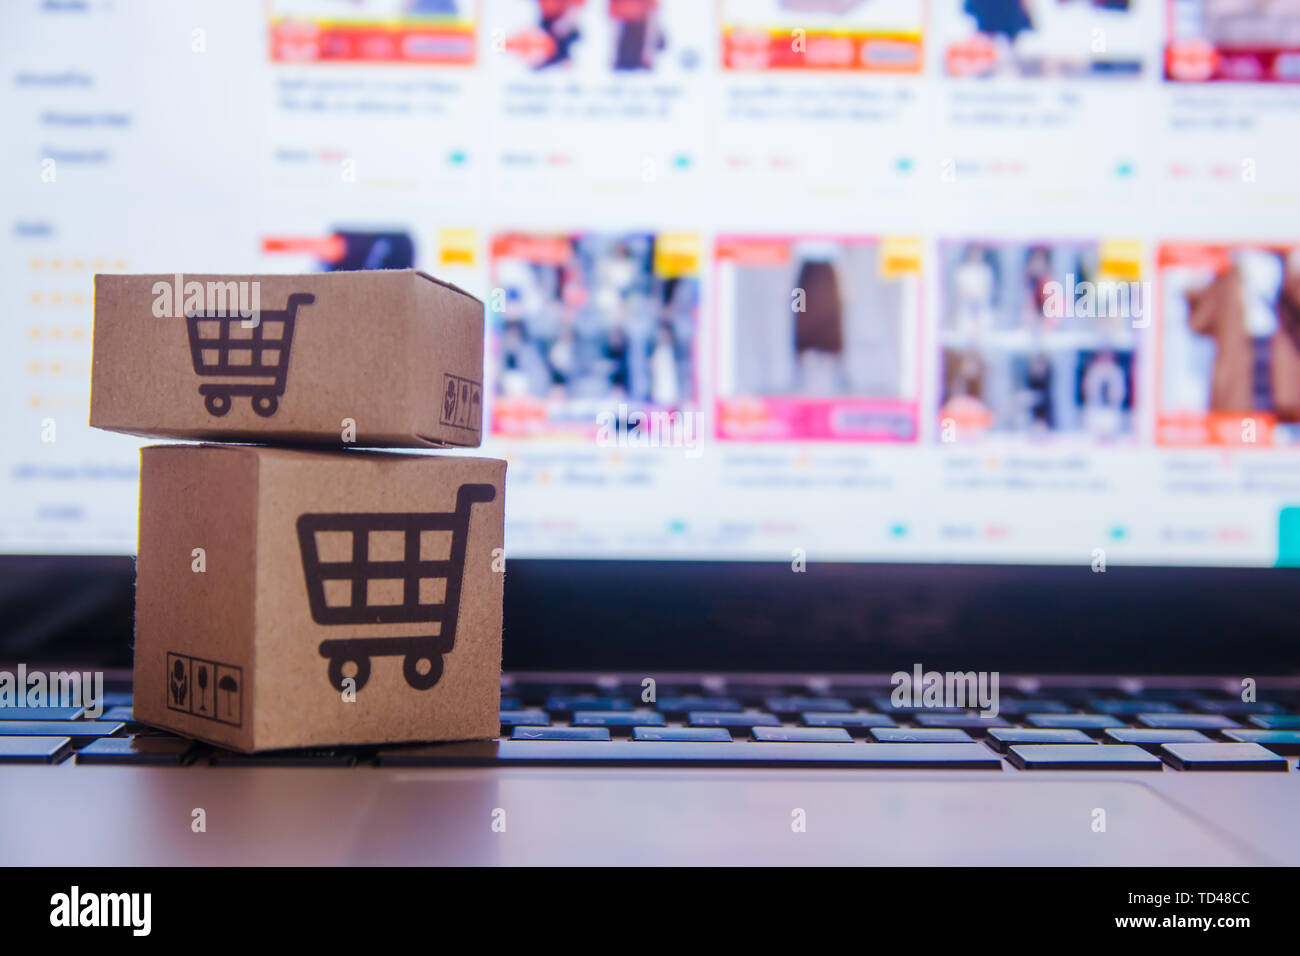 Online shopping - Paper cartons or parcel with a shopping cart logo on a laptop keyboard. Shopping service on The online web and offers home delivery. Stock Photo